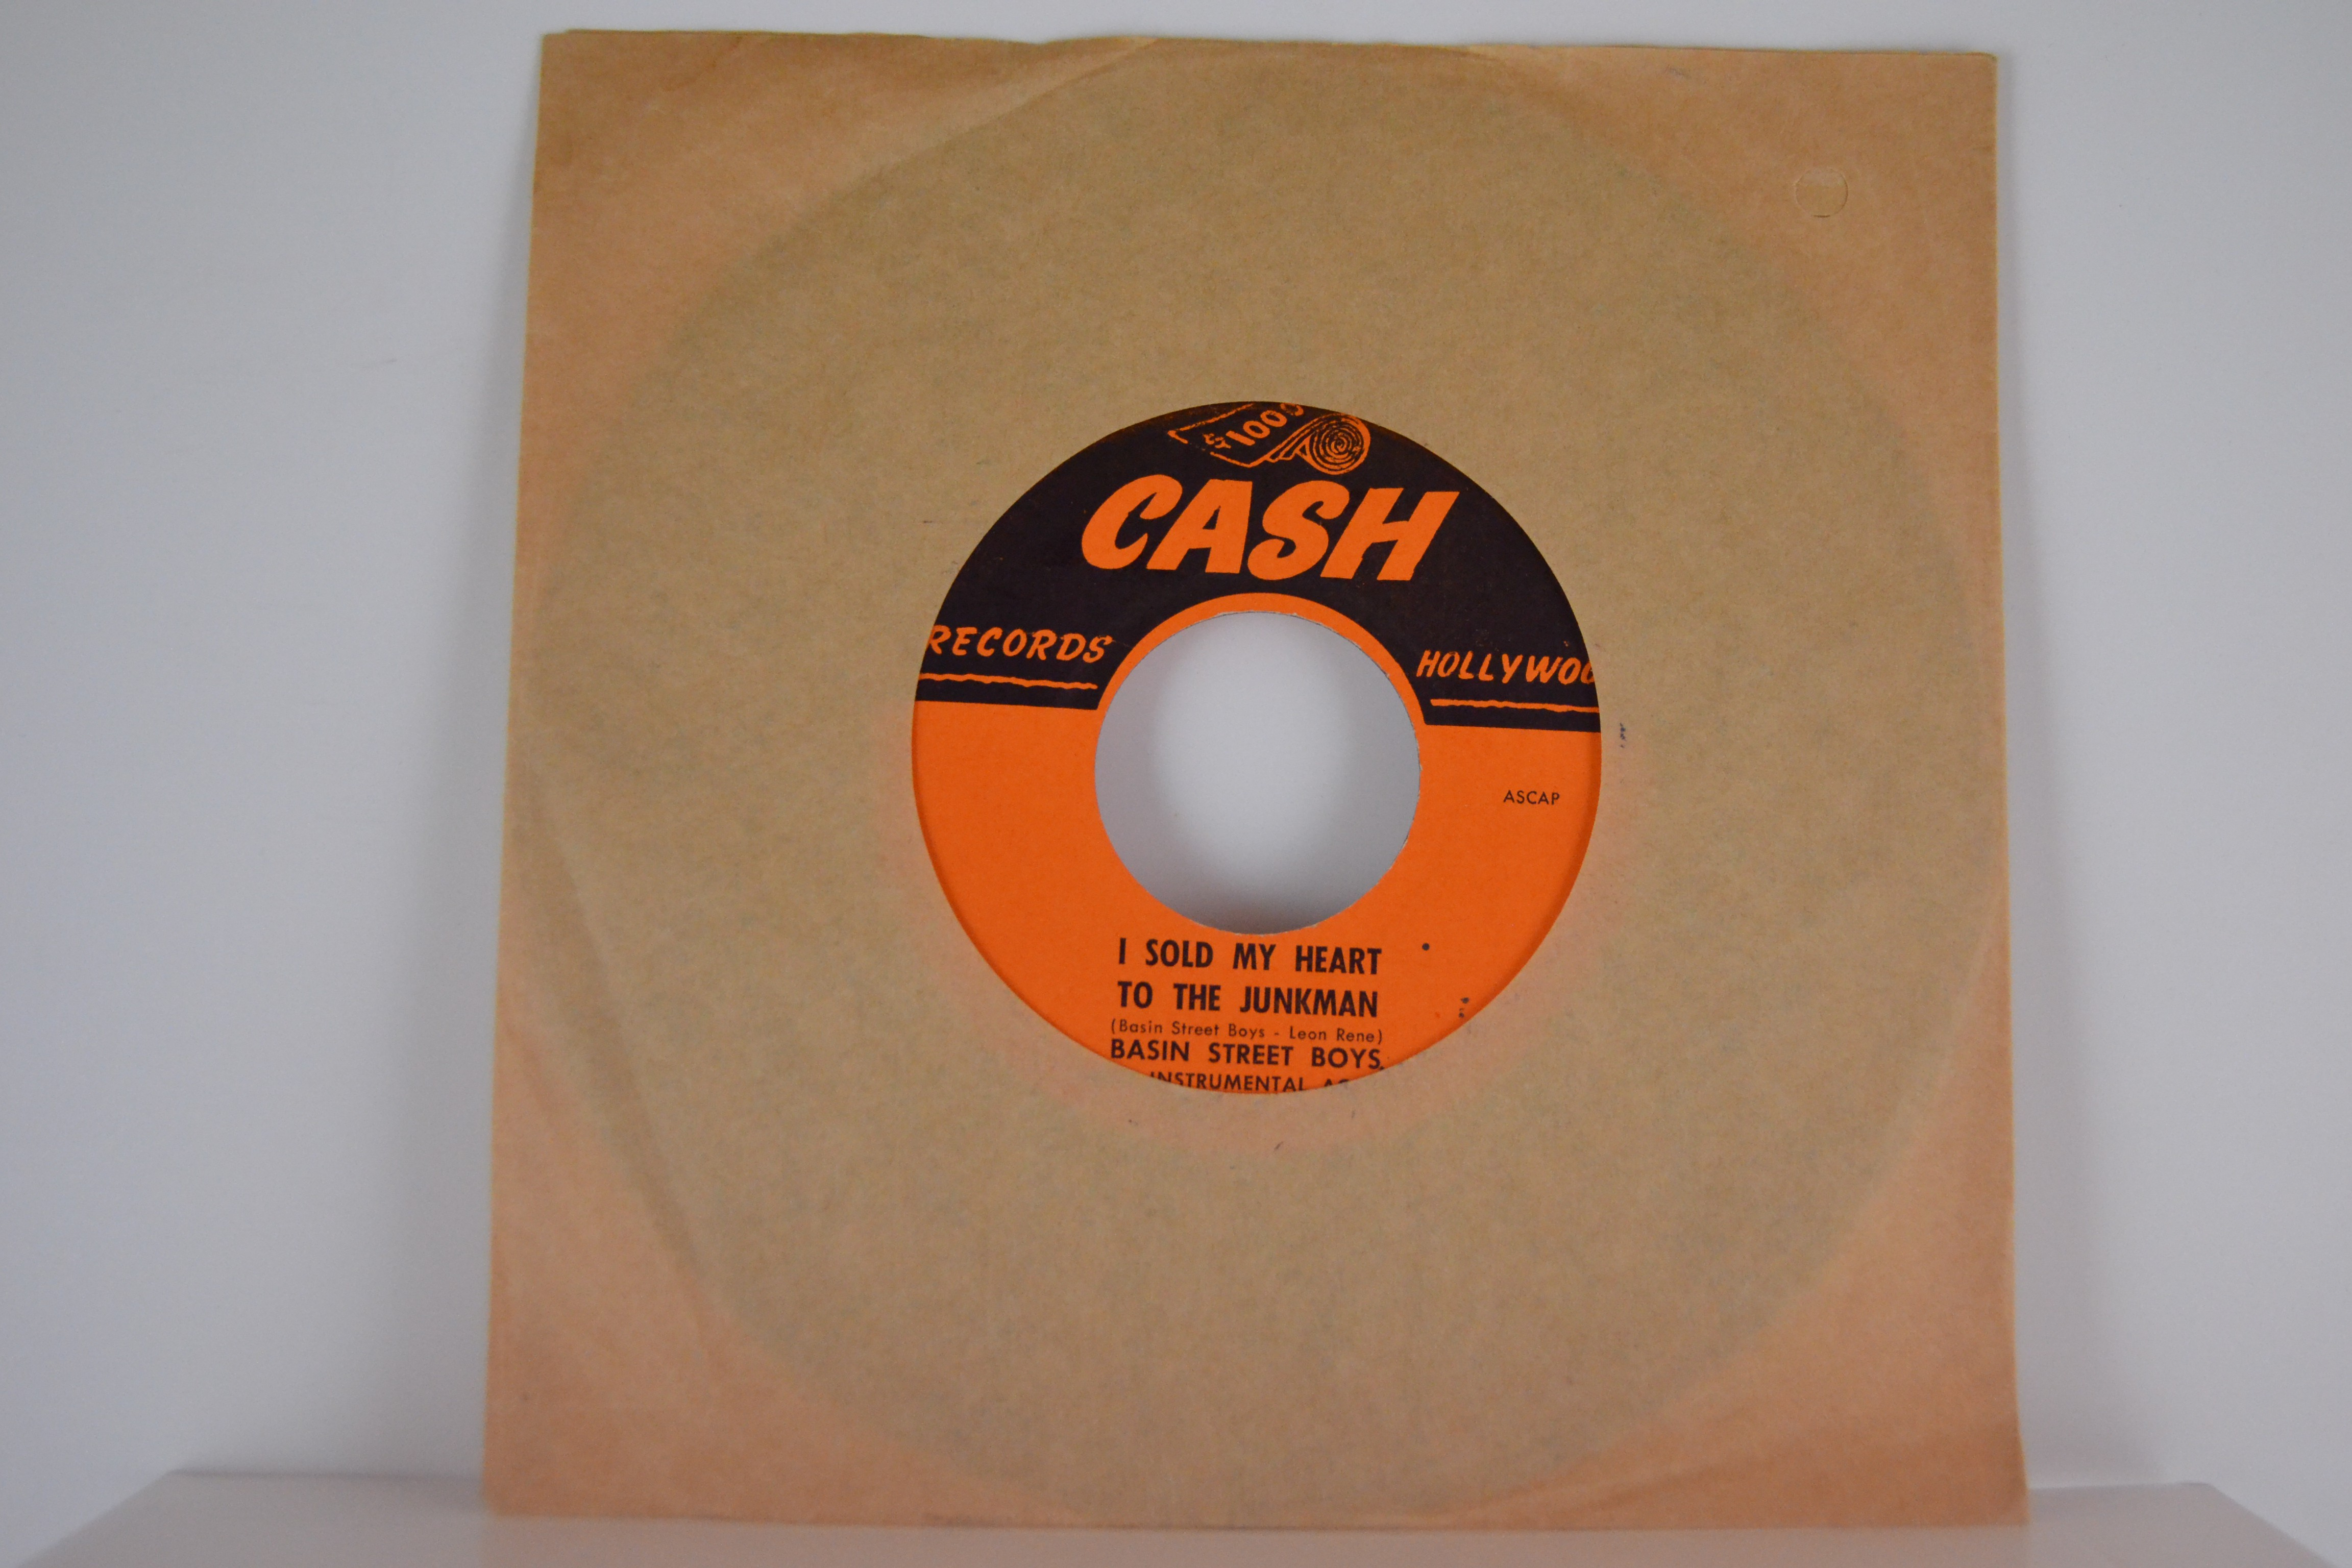 CHARLES BROWN : Lost in the night  /  BASIN STREET BOYS : I sold my heart to the junkman